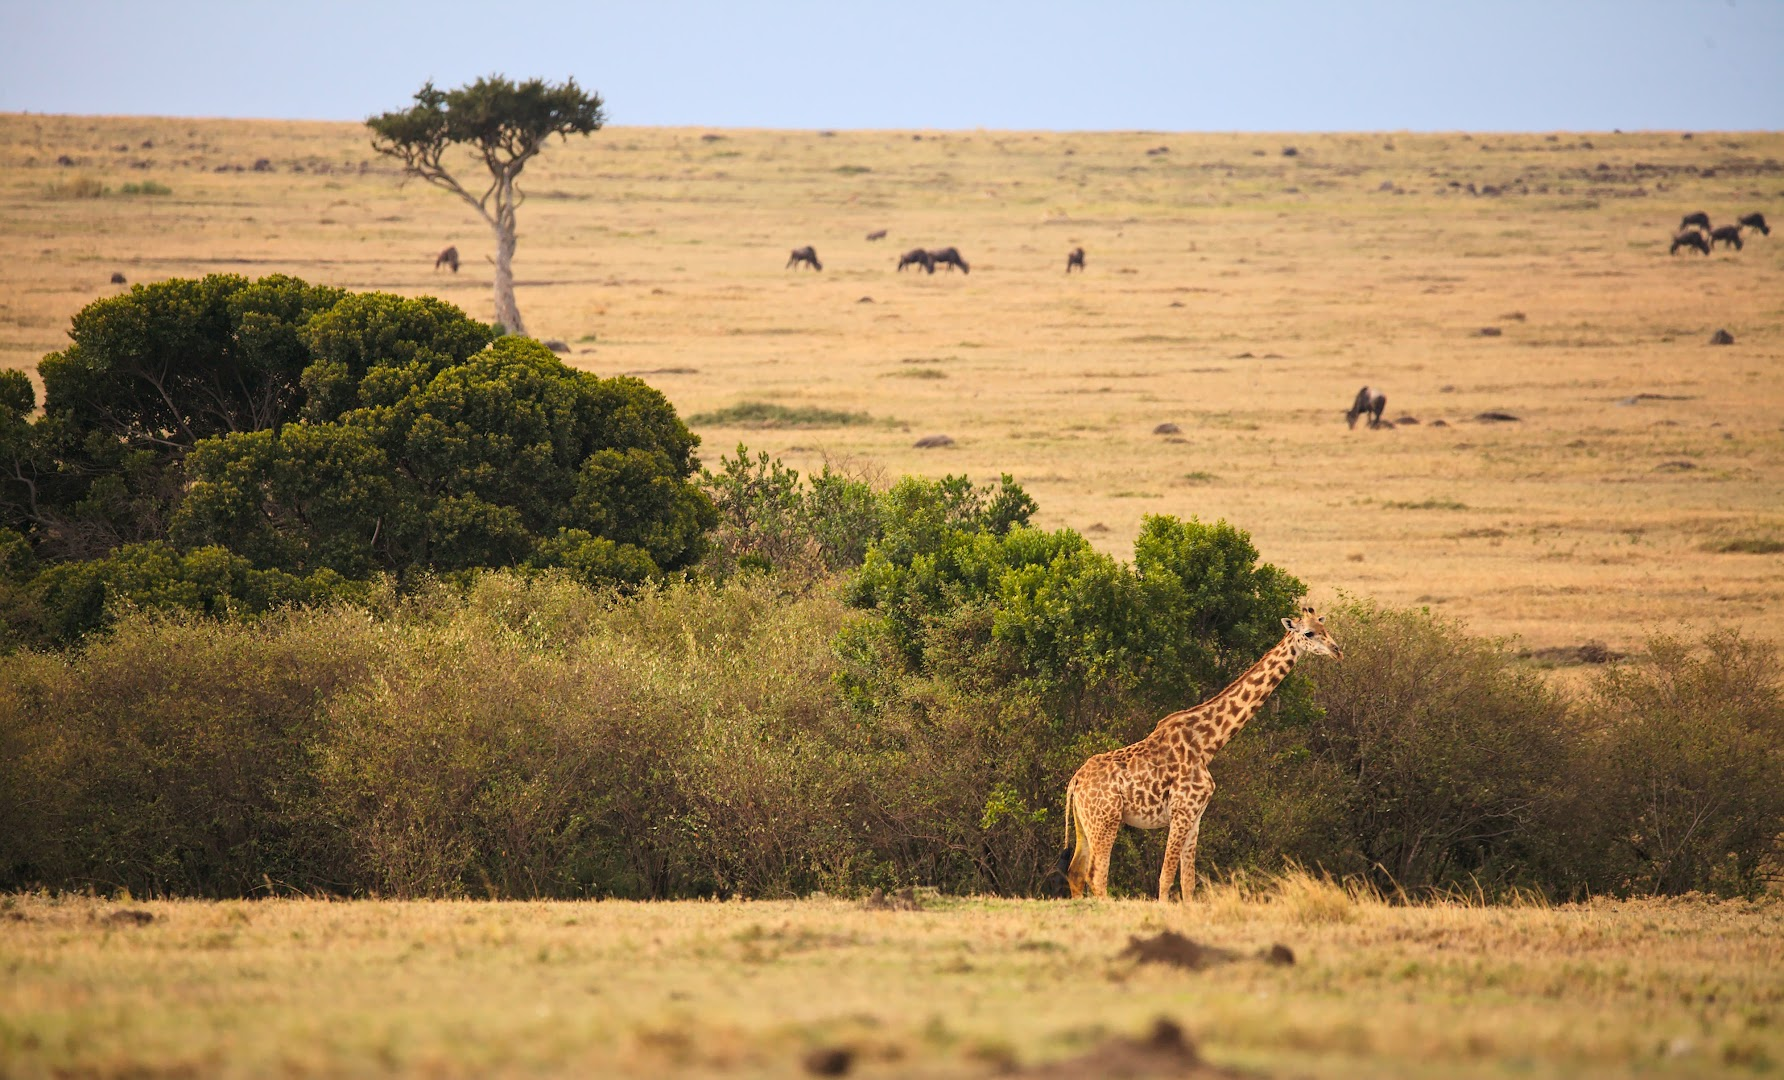 Giraffes are usually found near the trees, even if there are few